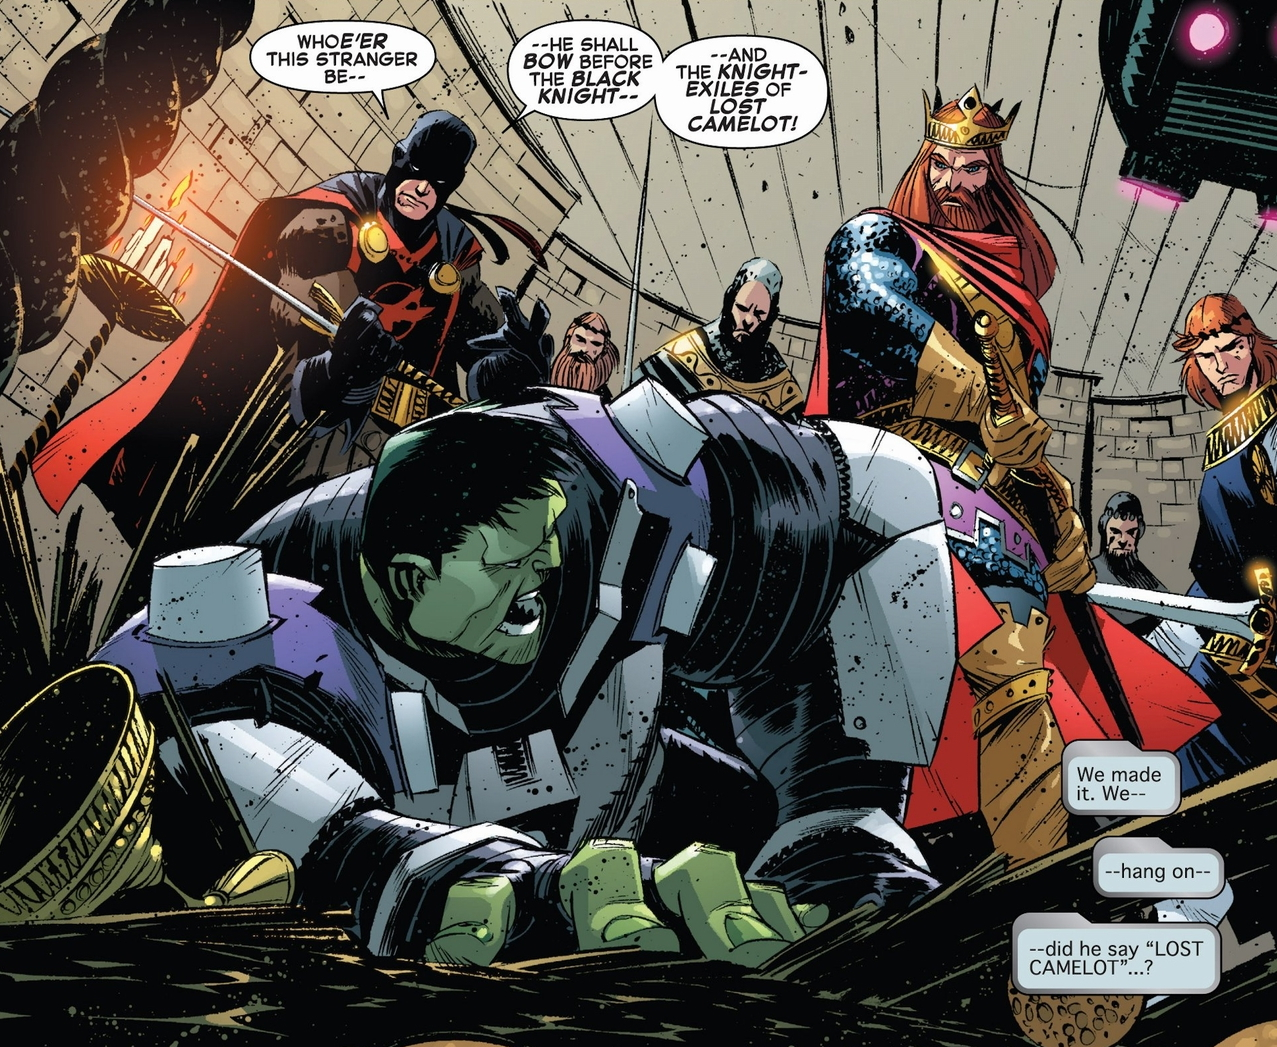 hulk panel with Arthur and Black Knight